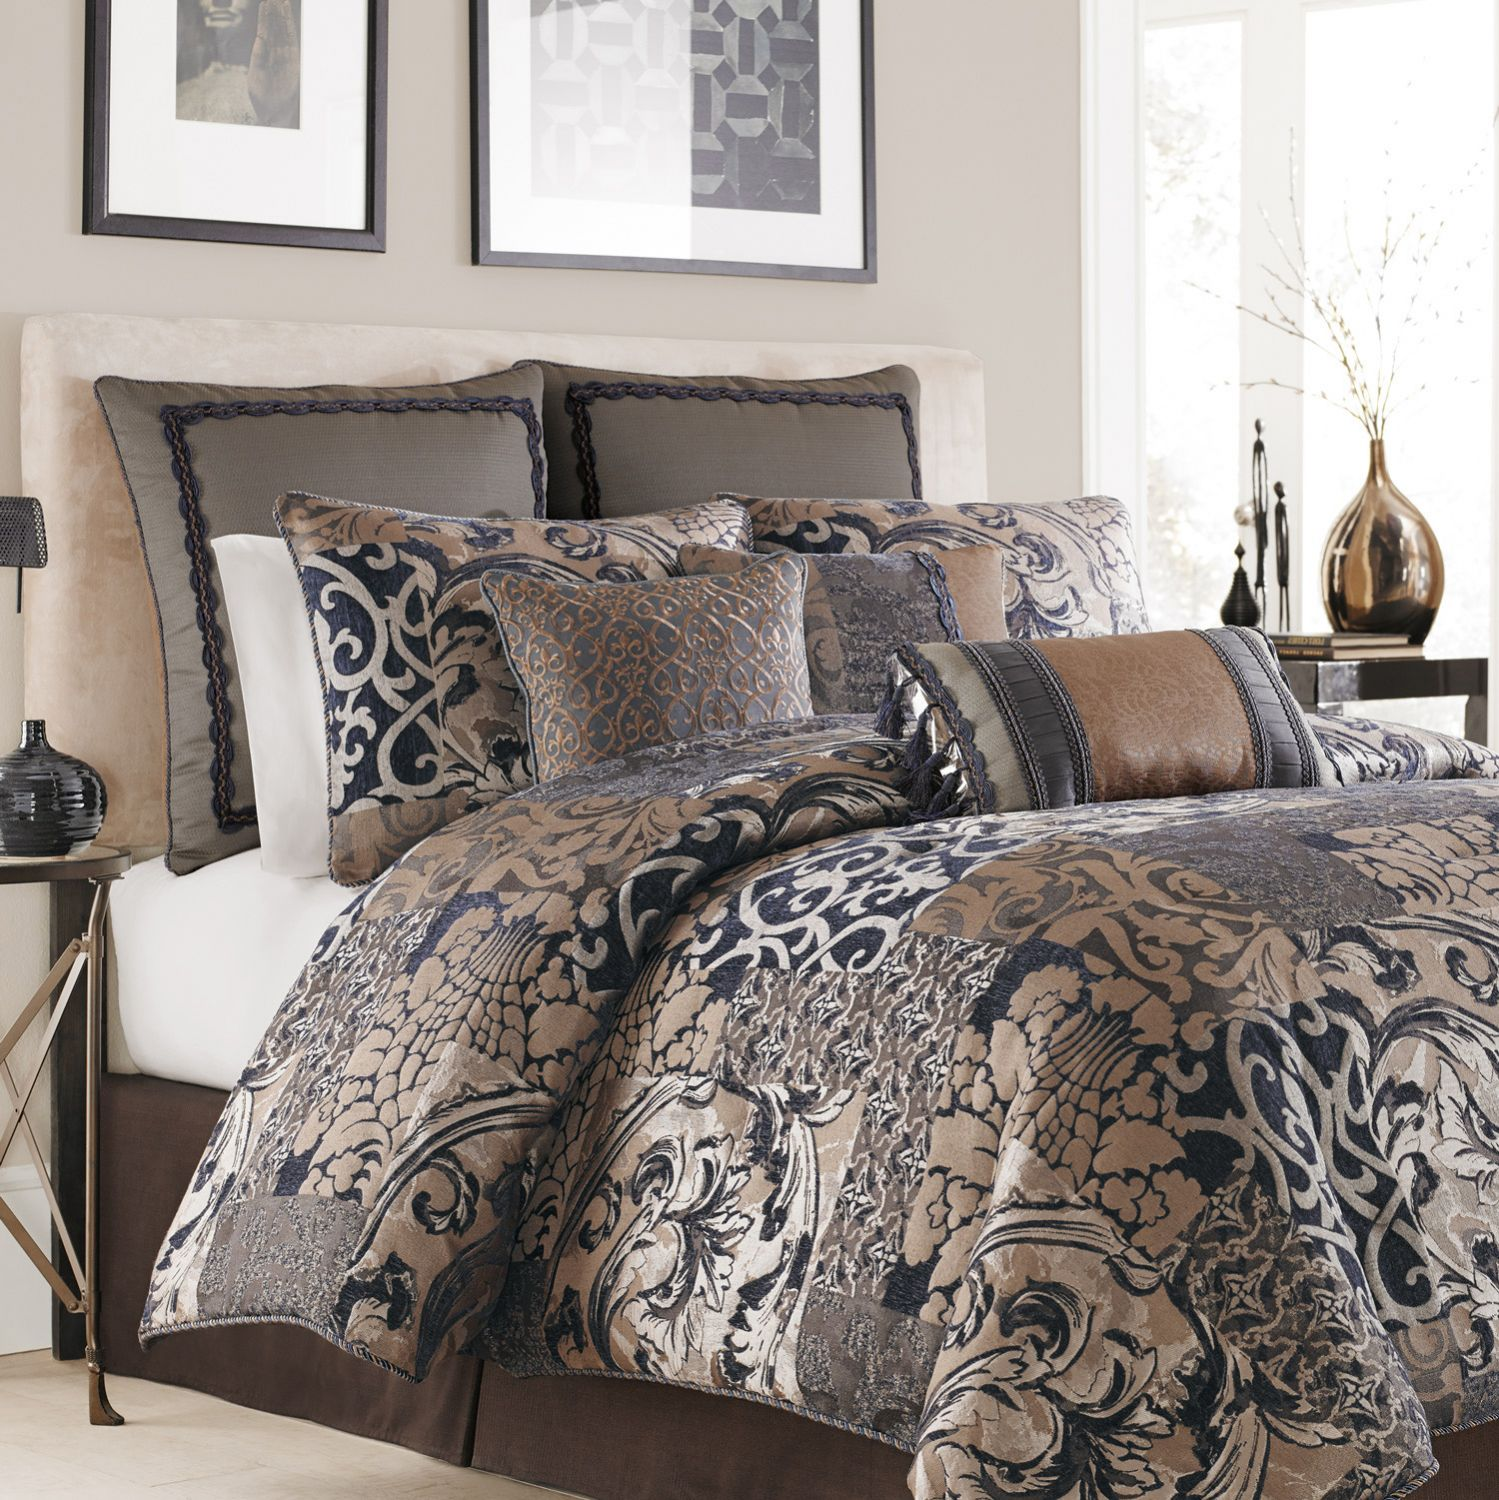 Black and white bedding walmart - Turquoise Comforter Set Queen Bedding Sets Walmart Queen Bedding Sets